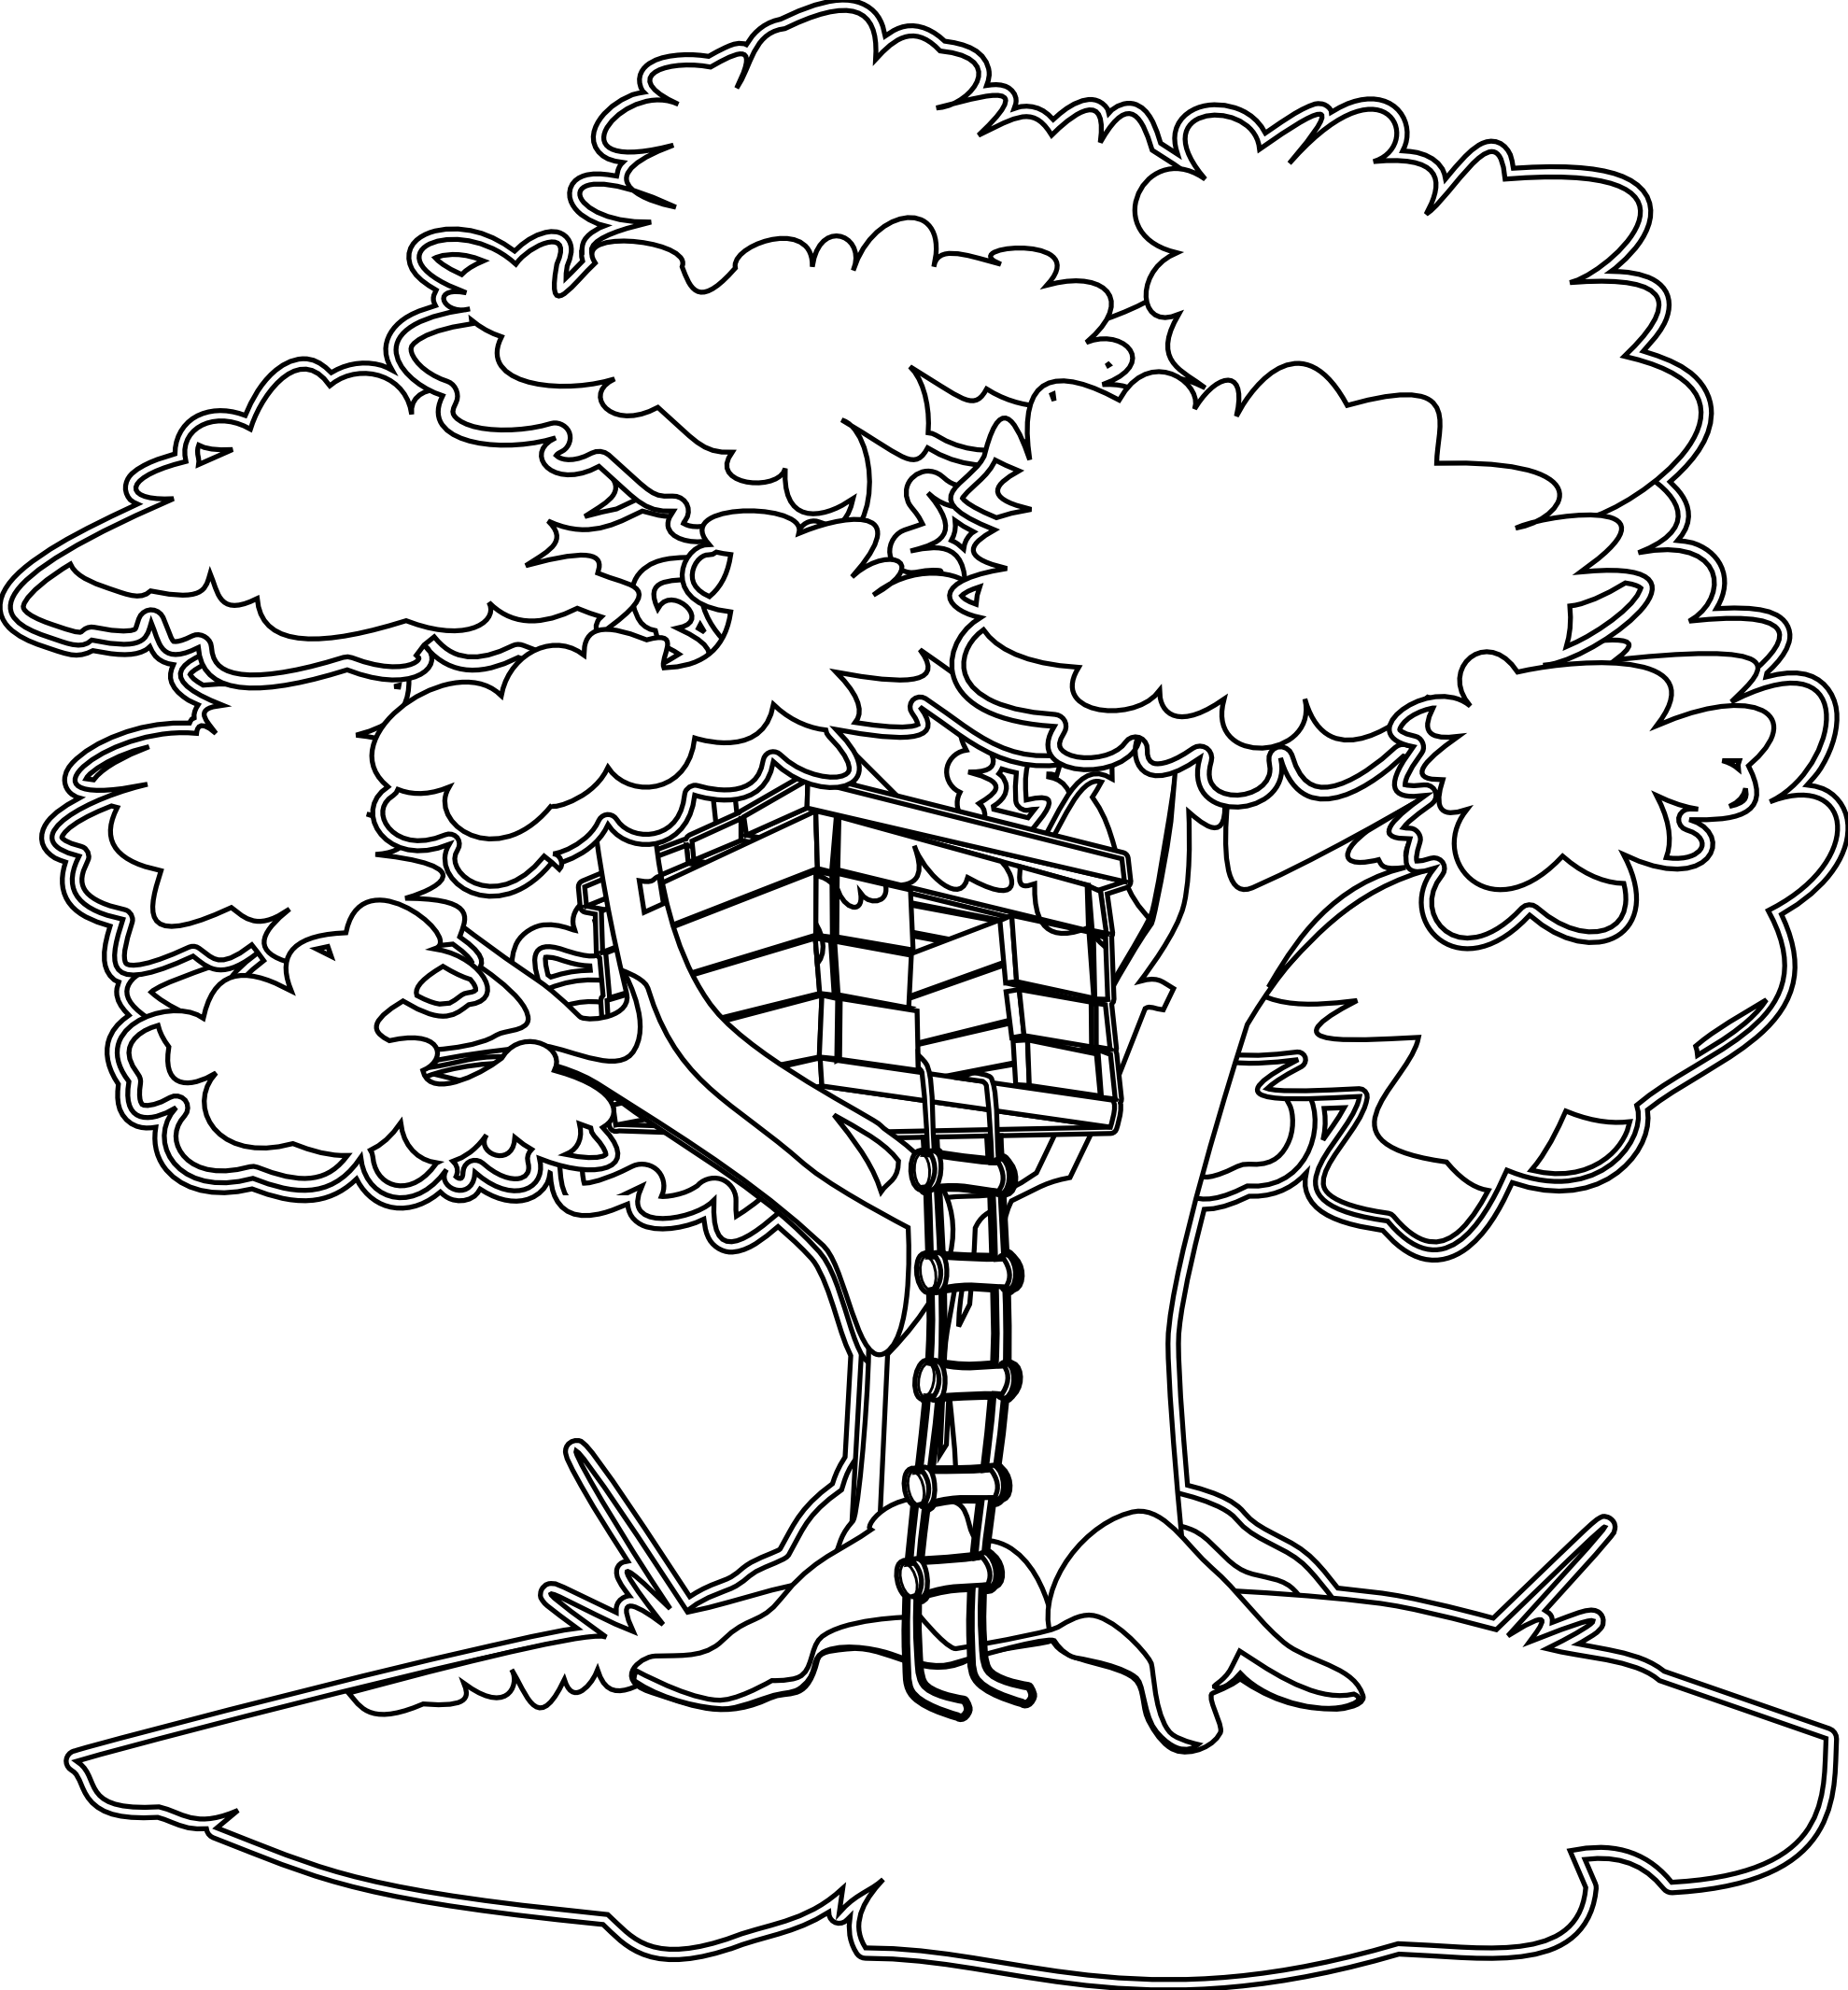 Tree House Black White Line Art Coloring Book Colouring